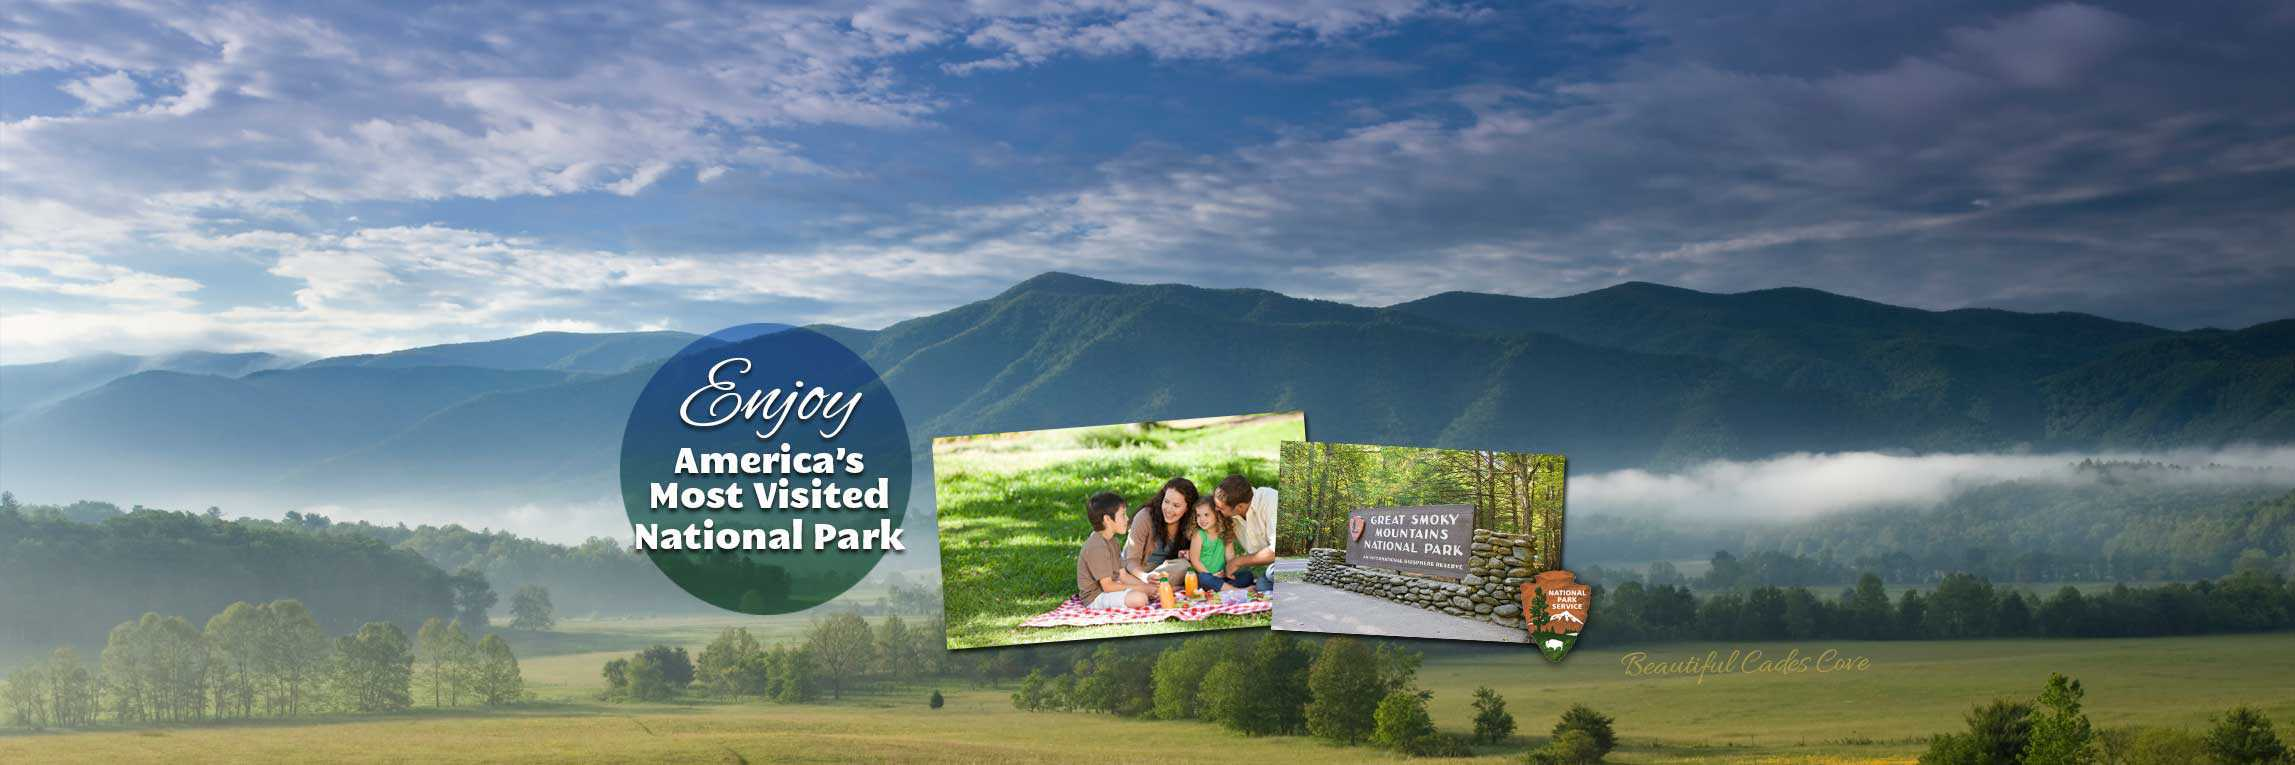 A banner featuring the Great Smoky Mountains, a picnic, and a sign for the national park.